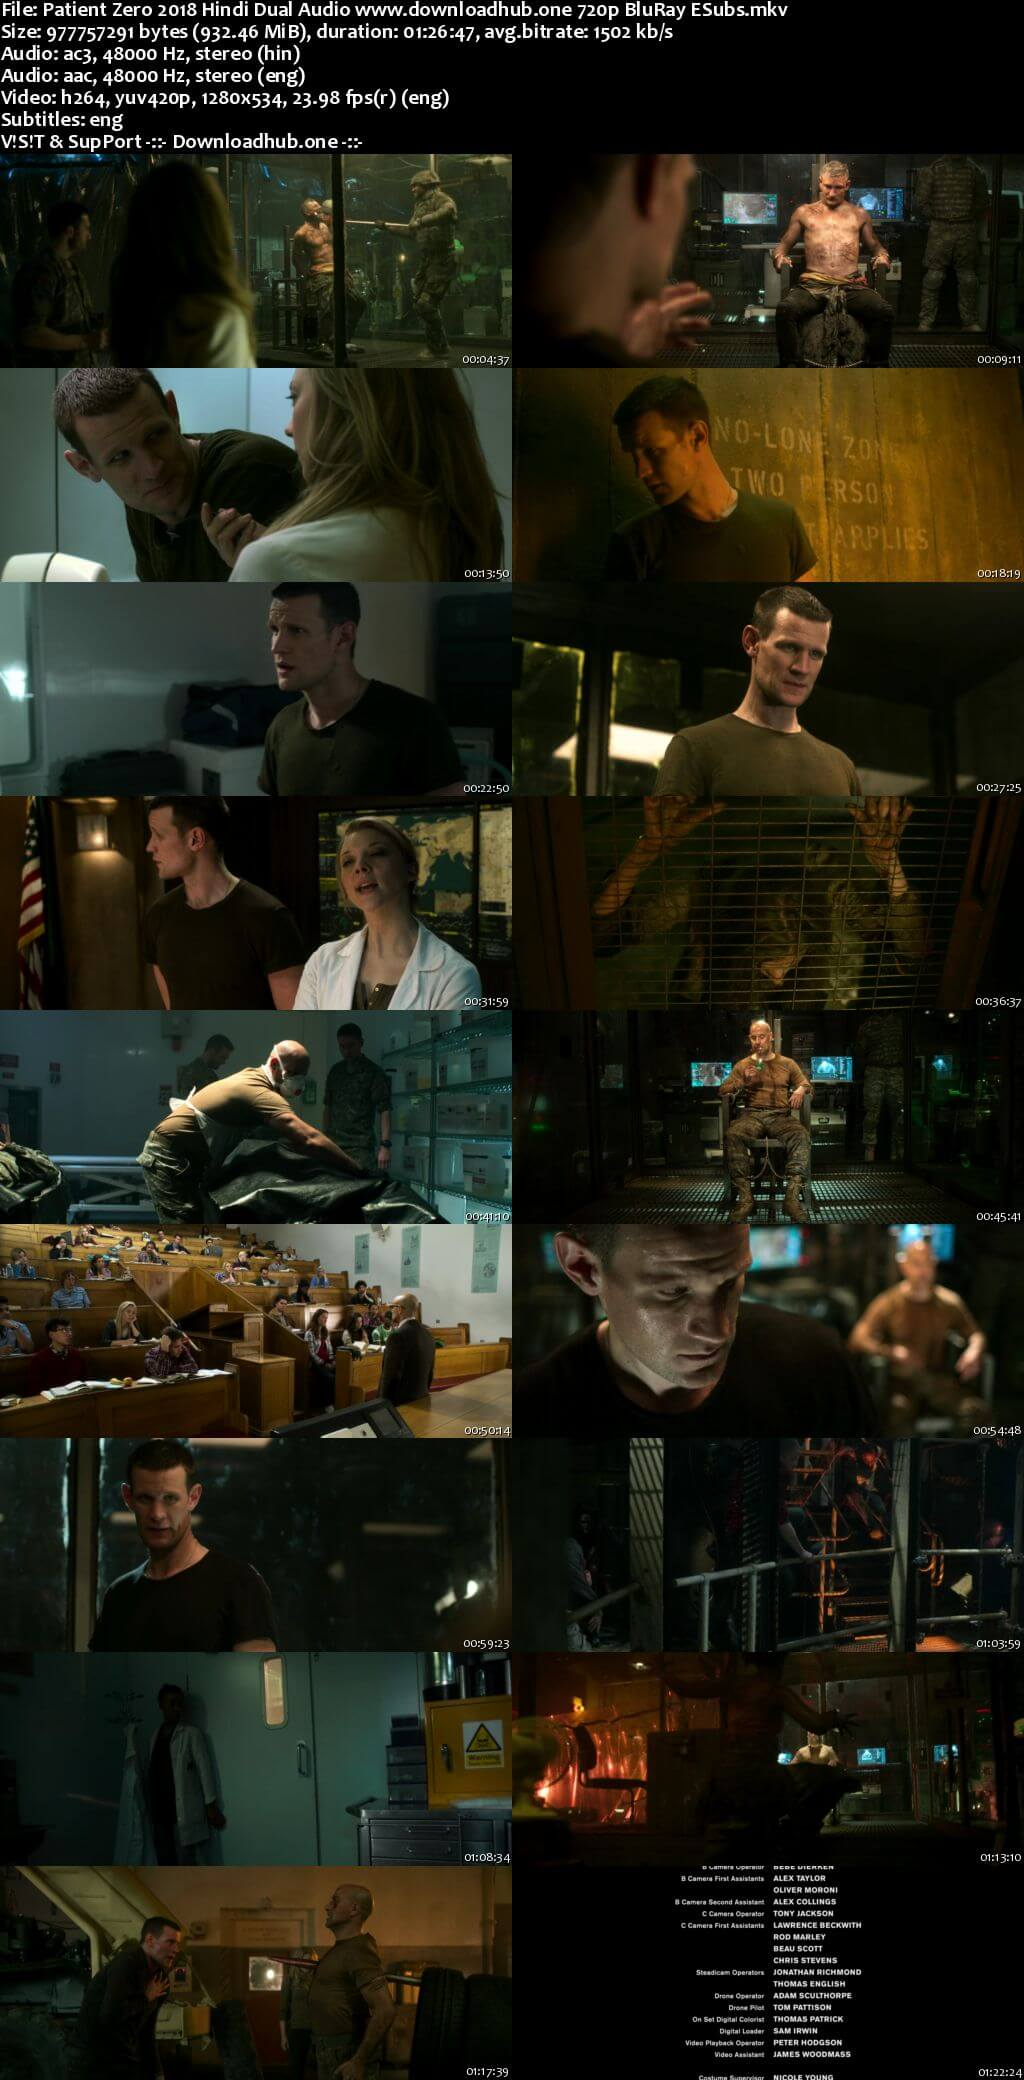 Patient Zero 2018 Hindi Dual Audio 720p BluRay ESubs